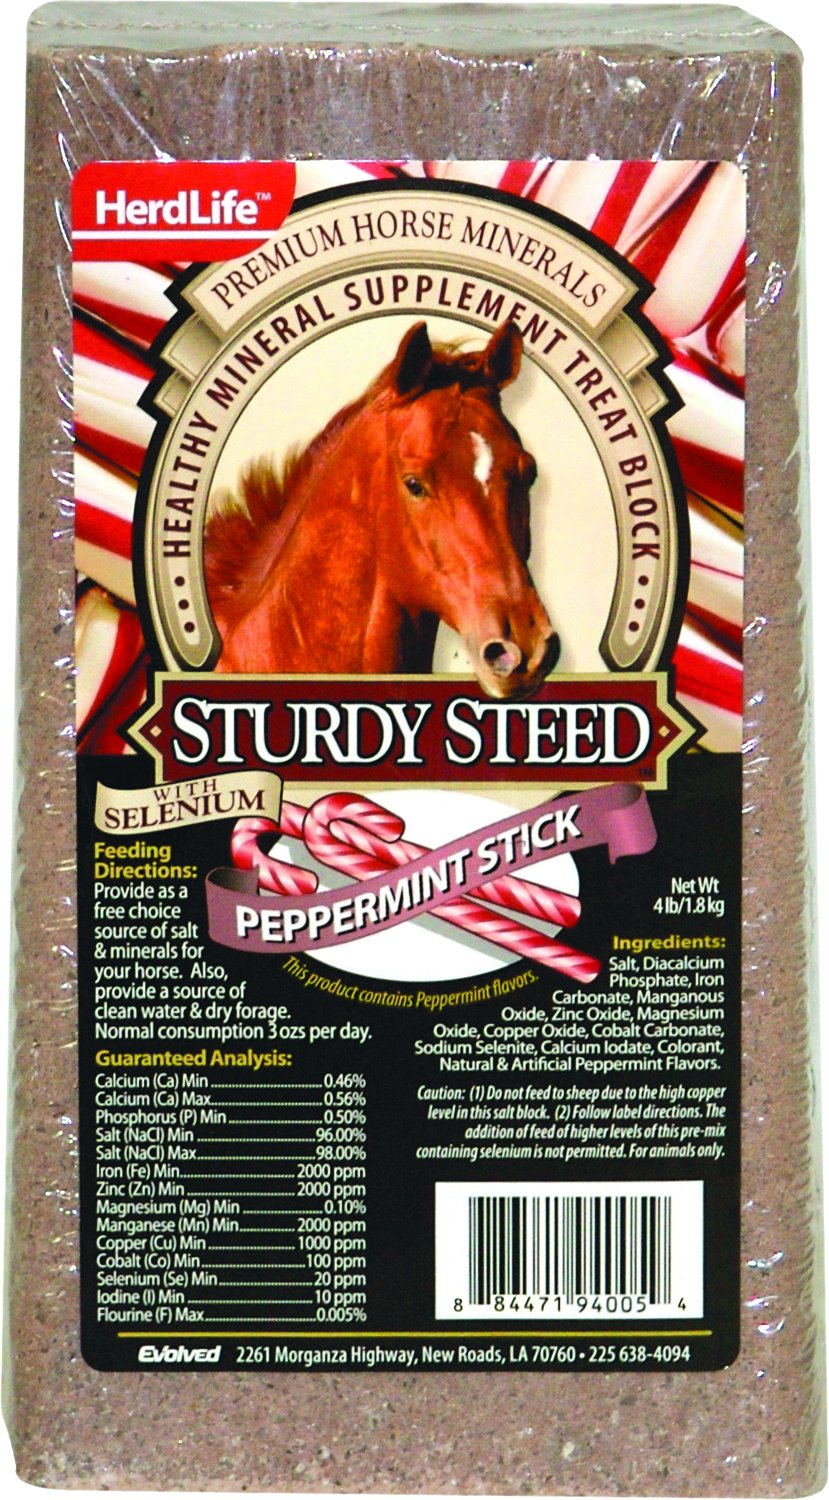 EVOLVED Sturdy Steed Horse Block 539559 4LBS. GB Industrial Direct 94005